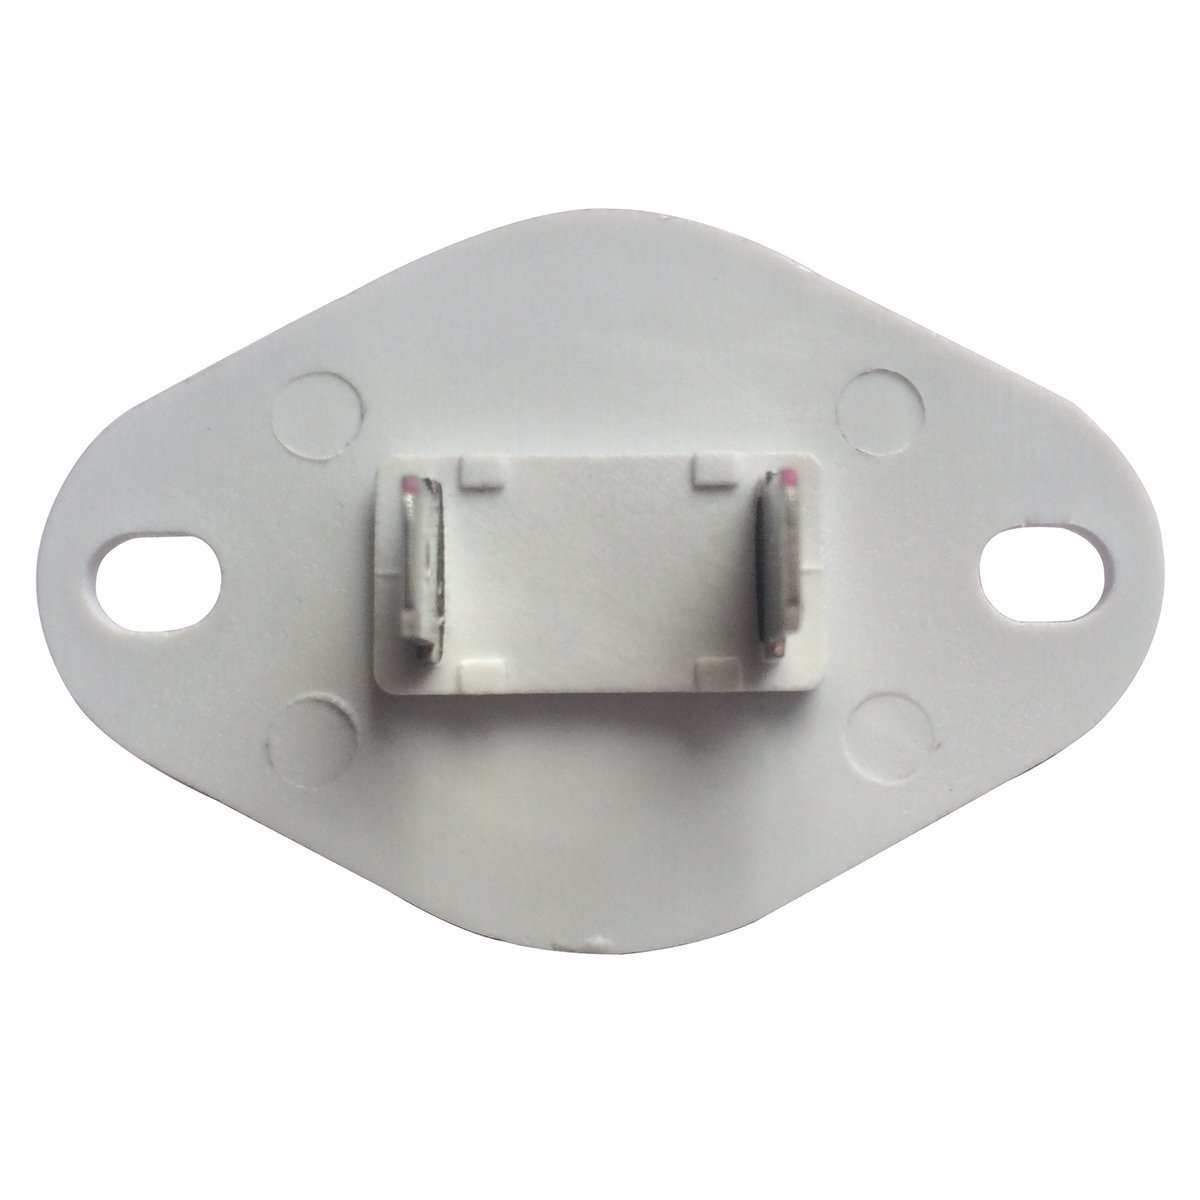 8577274 Replacement Thermister for Whirlpool Dryer Lifetime Appliance Parts